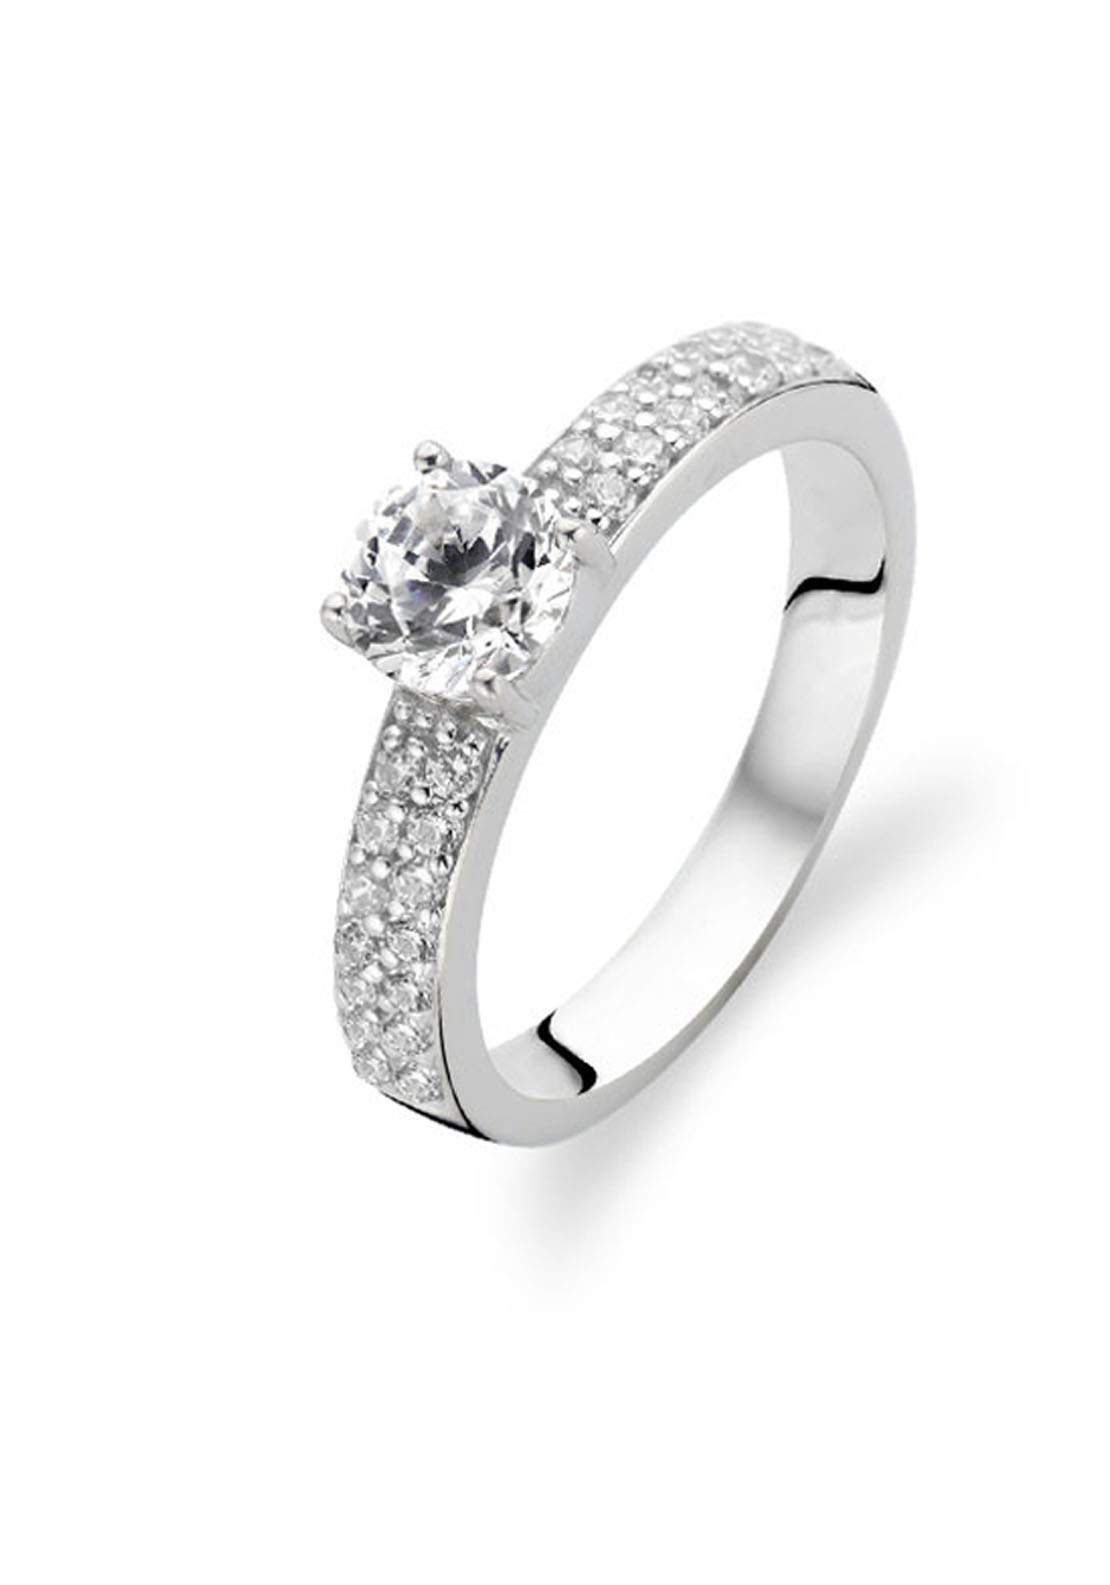 Ti Sento Solitaire Ring, Size N